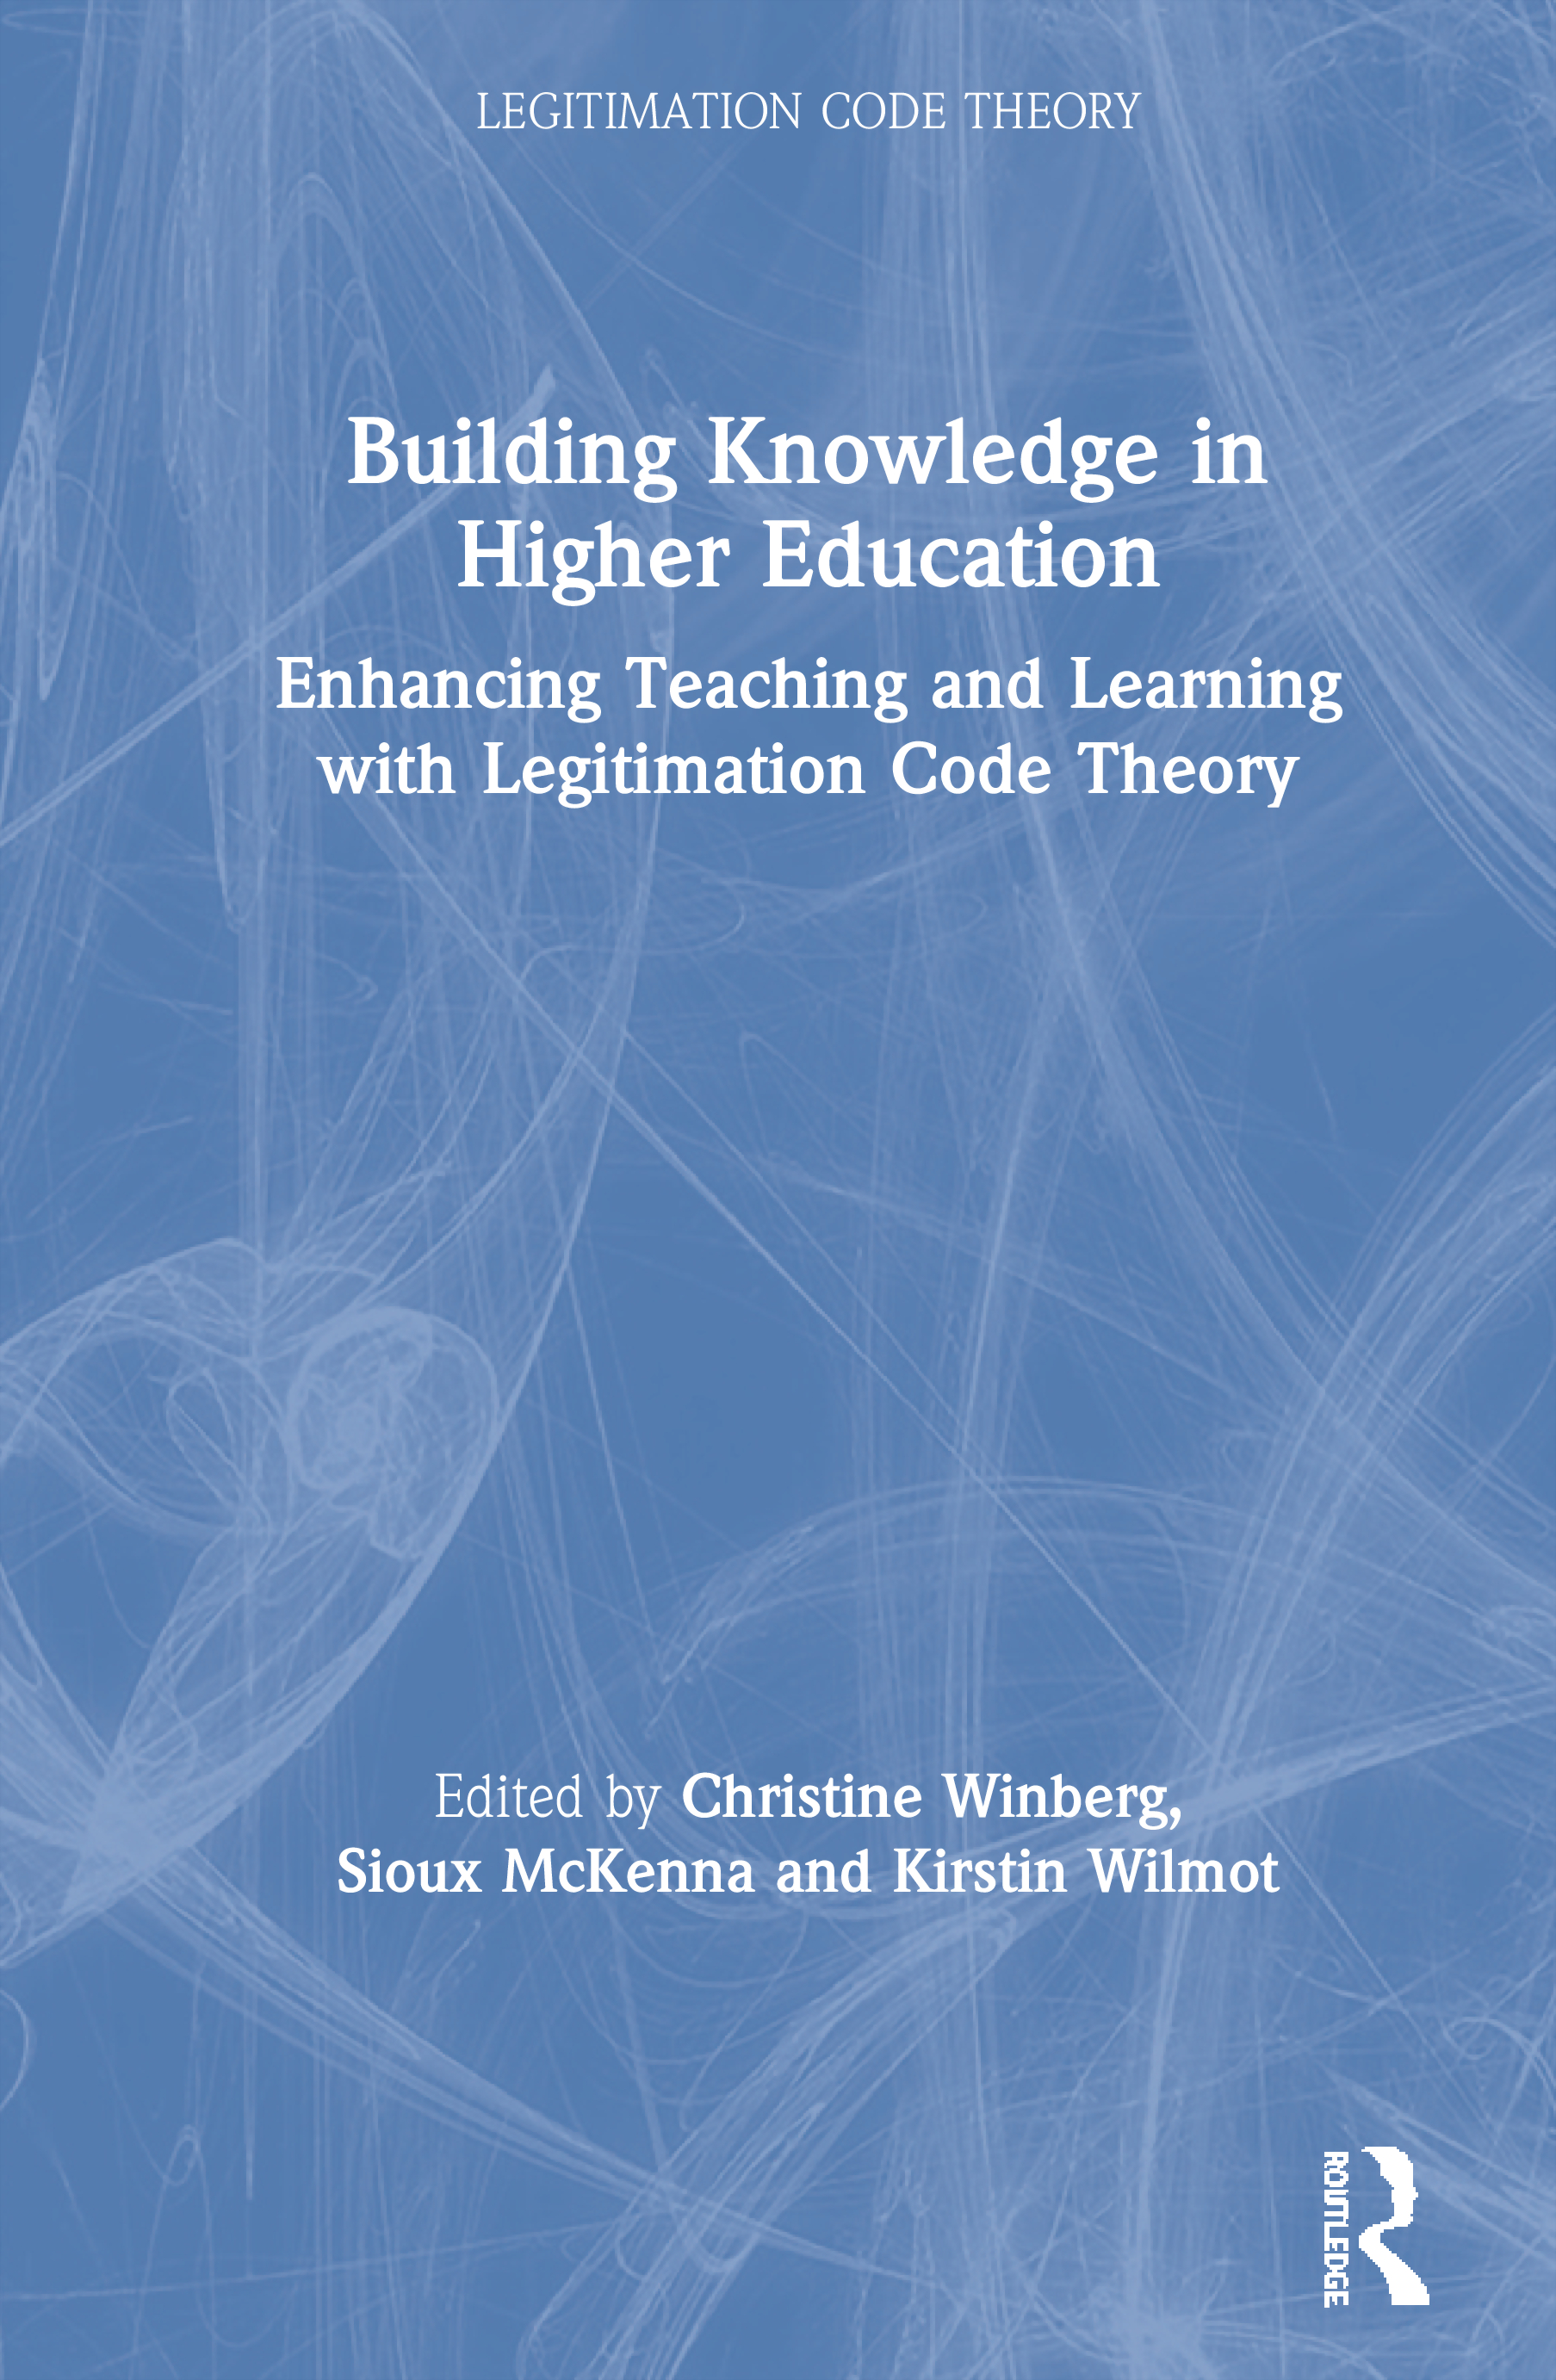 Building Knowledge in Higher Education: Enhancing Teaching and Learning with Legitimation Code Theory book cover